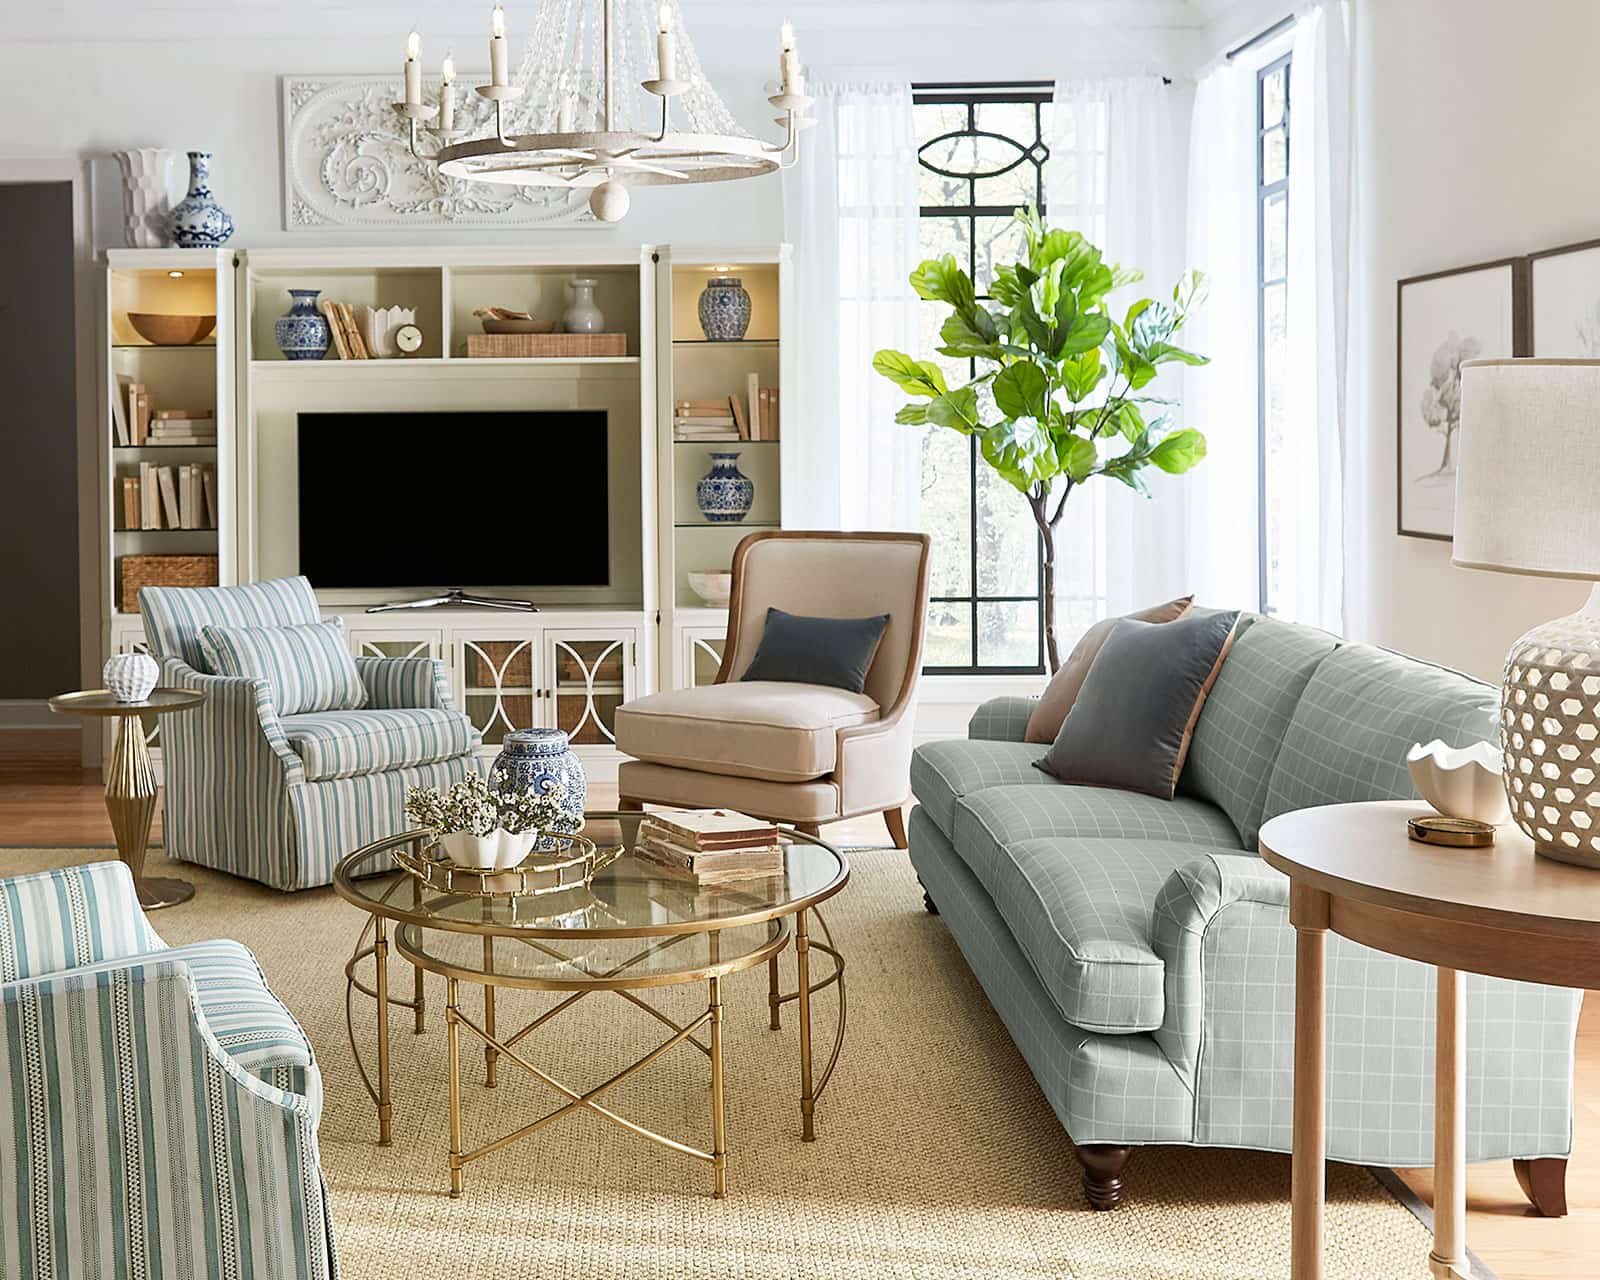 A Living Room Designs That Make Your Space Larger The Architecture Designs